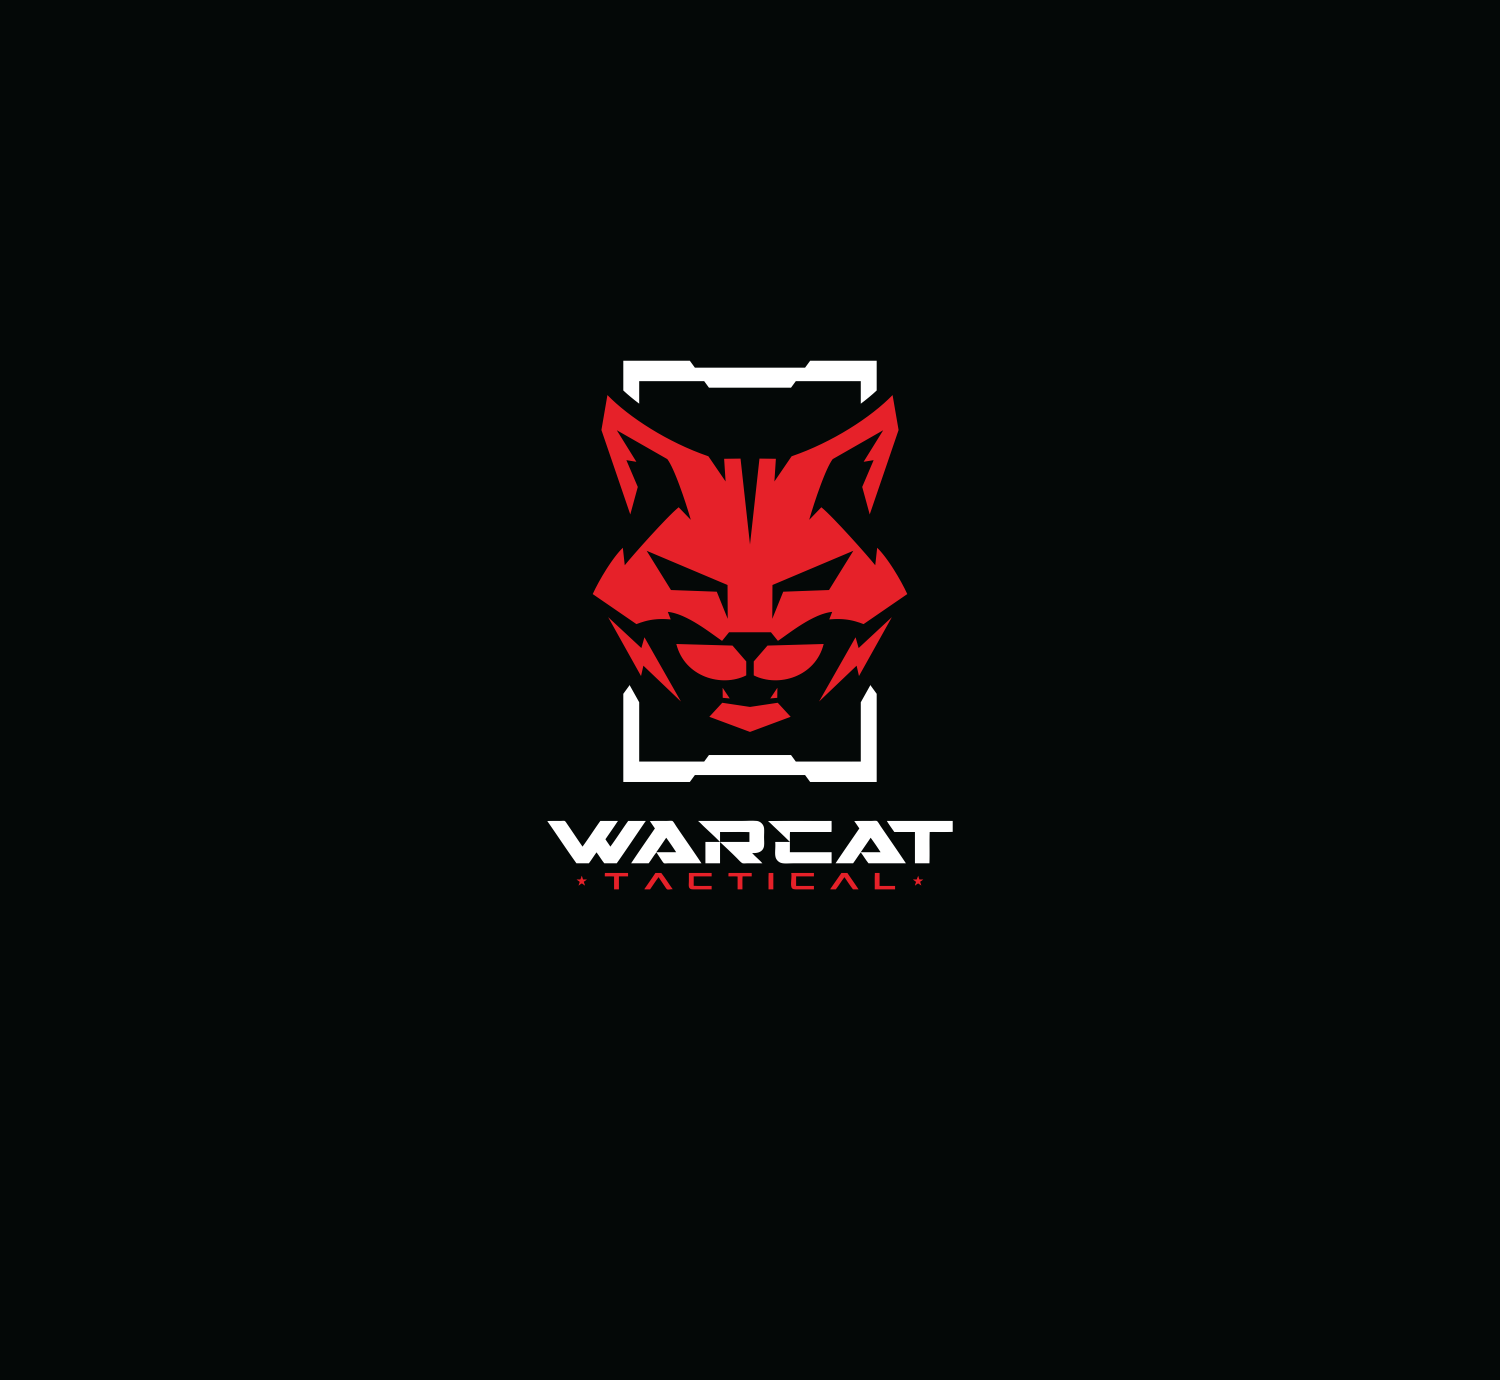 Logo revision for Warcat Tactical